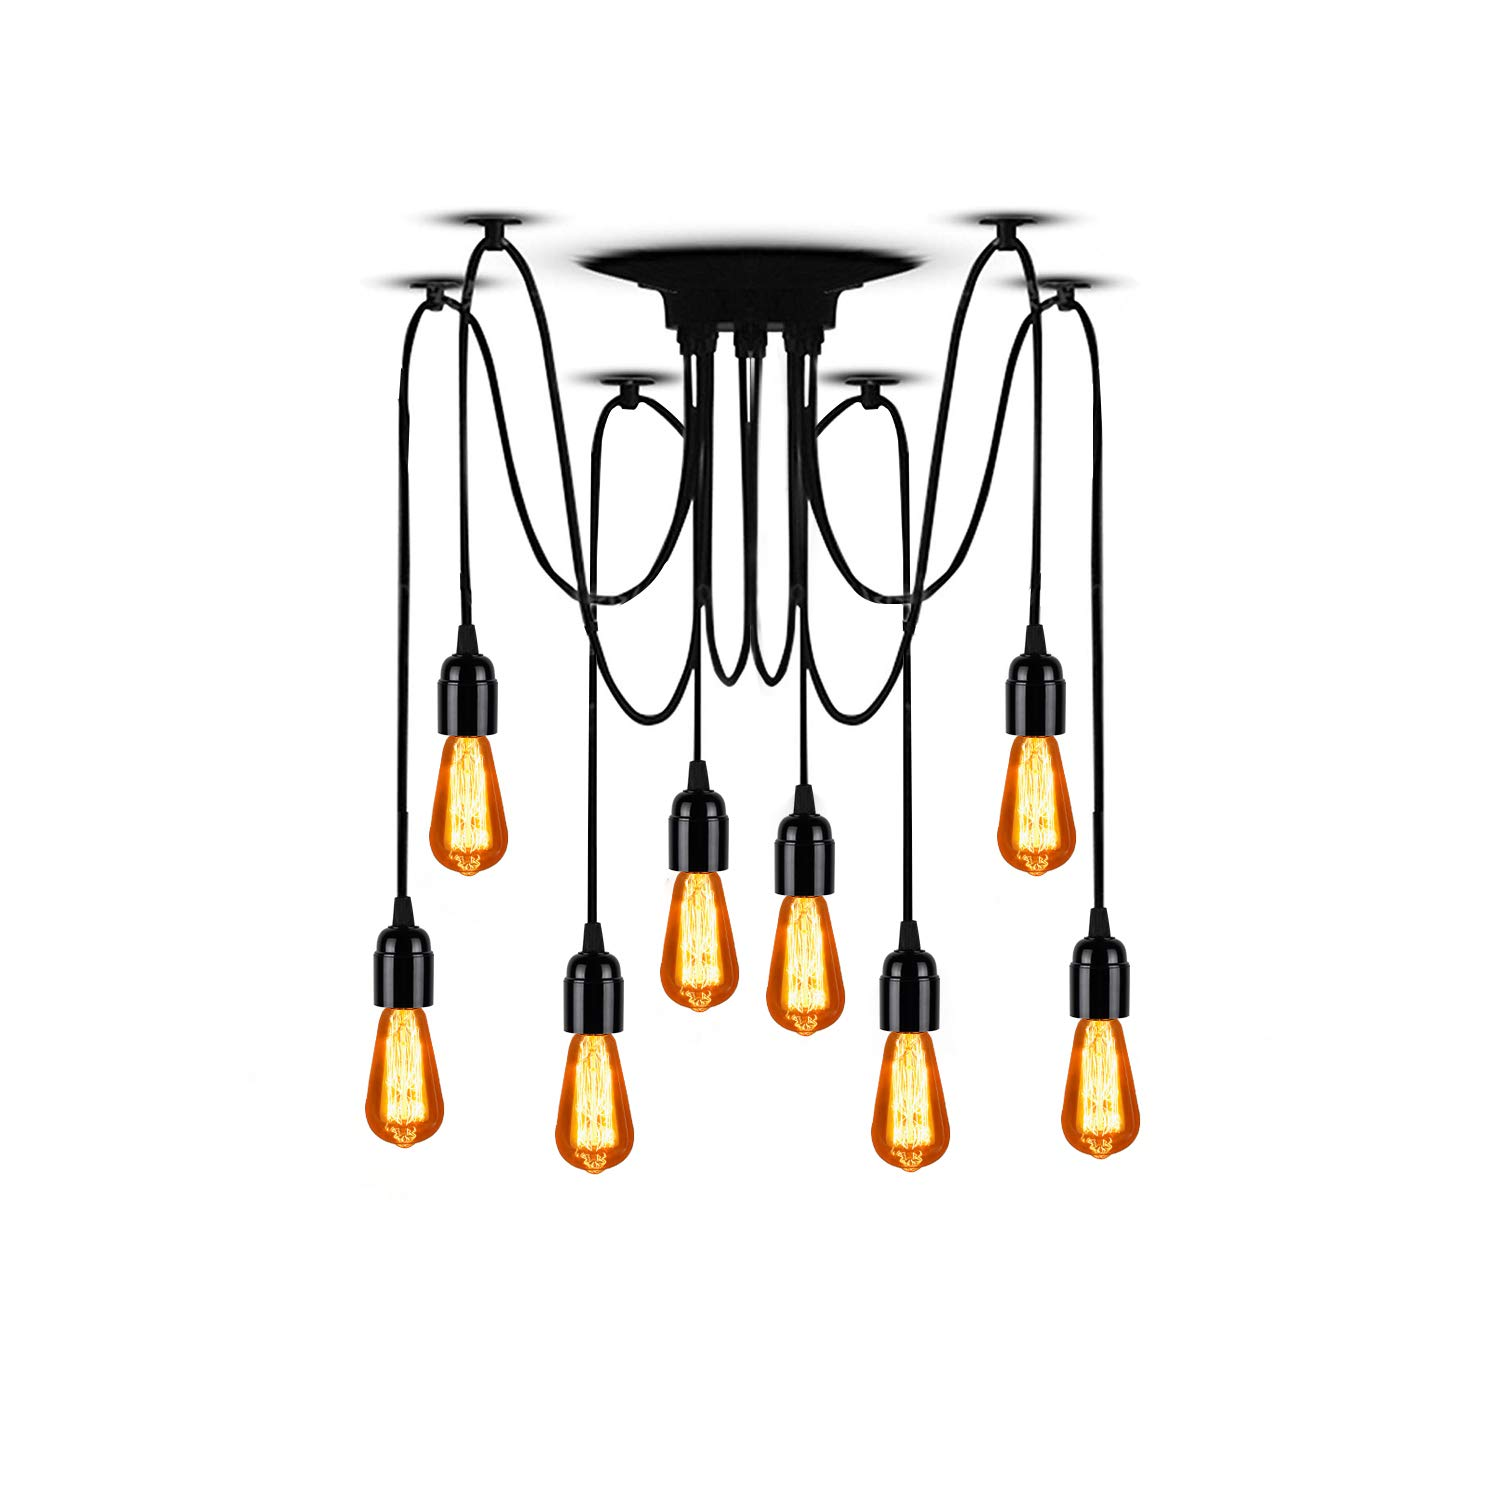 T&A 8 Arms Spider Lamps Vintage Edison Style Adjustable DIY Ceiling Spider Pendant Lighting Rustic Chandelier(Each with 78.74''/2M Wire)